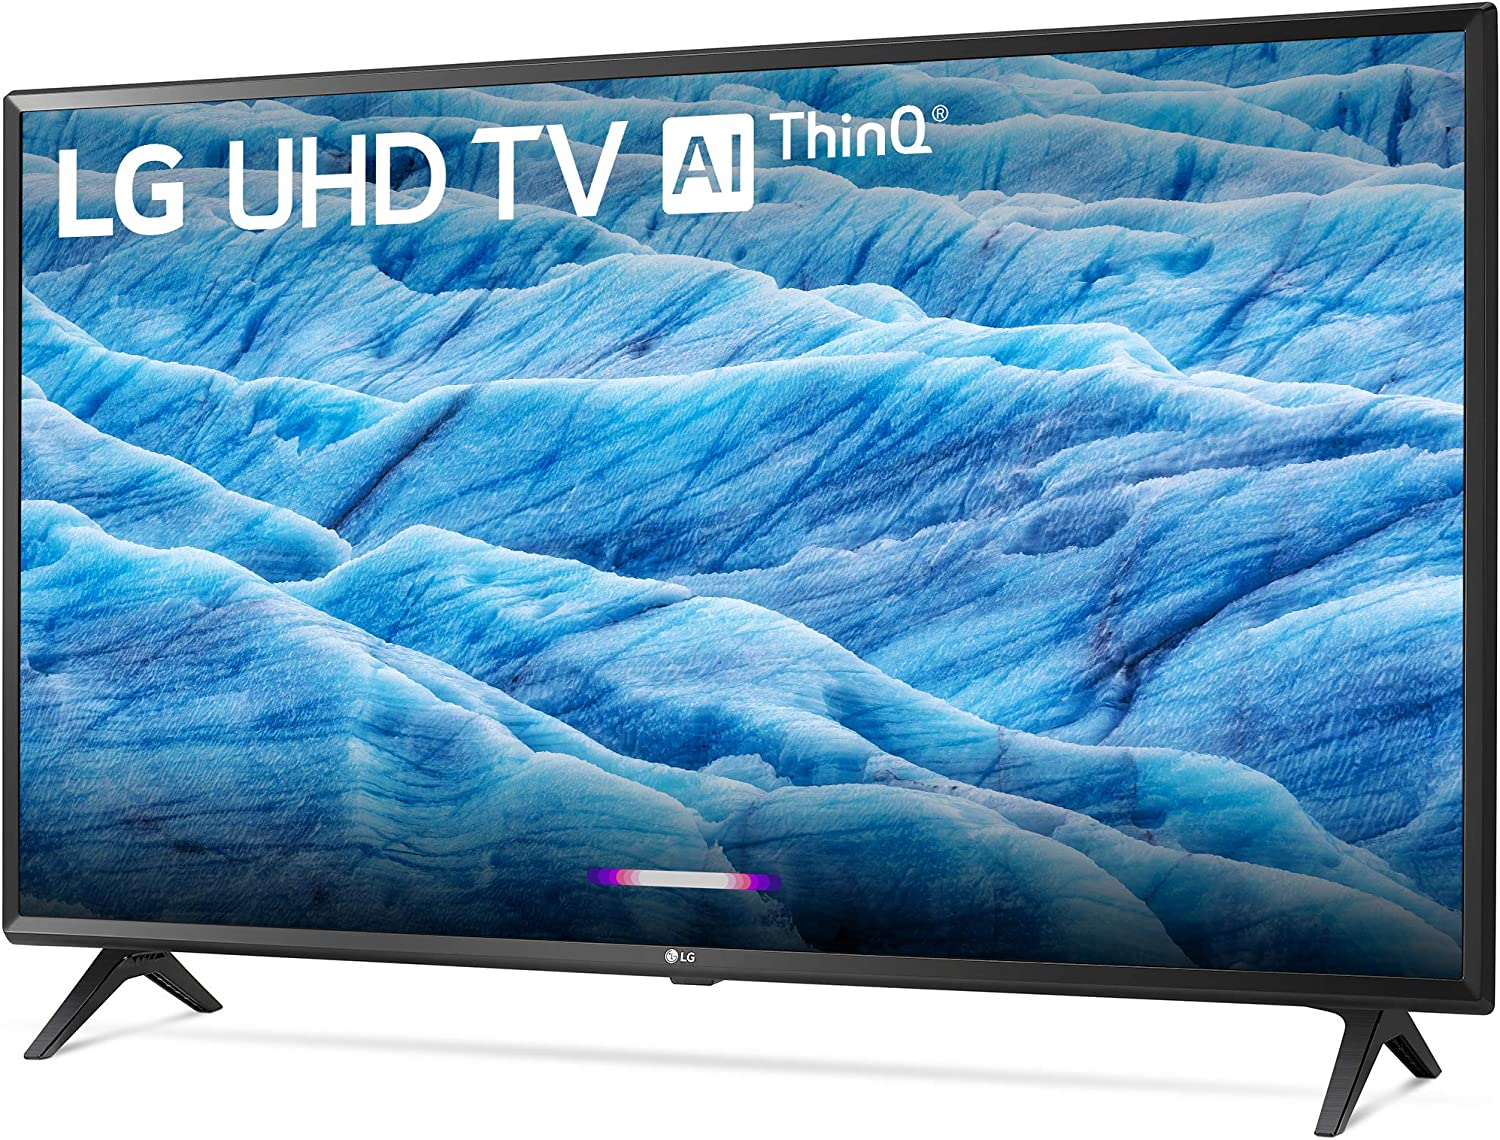 Image result for Stream with LG's 49-inch 4K UHD Smart TV on sale for just $250 today only